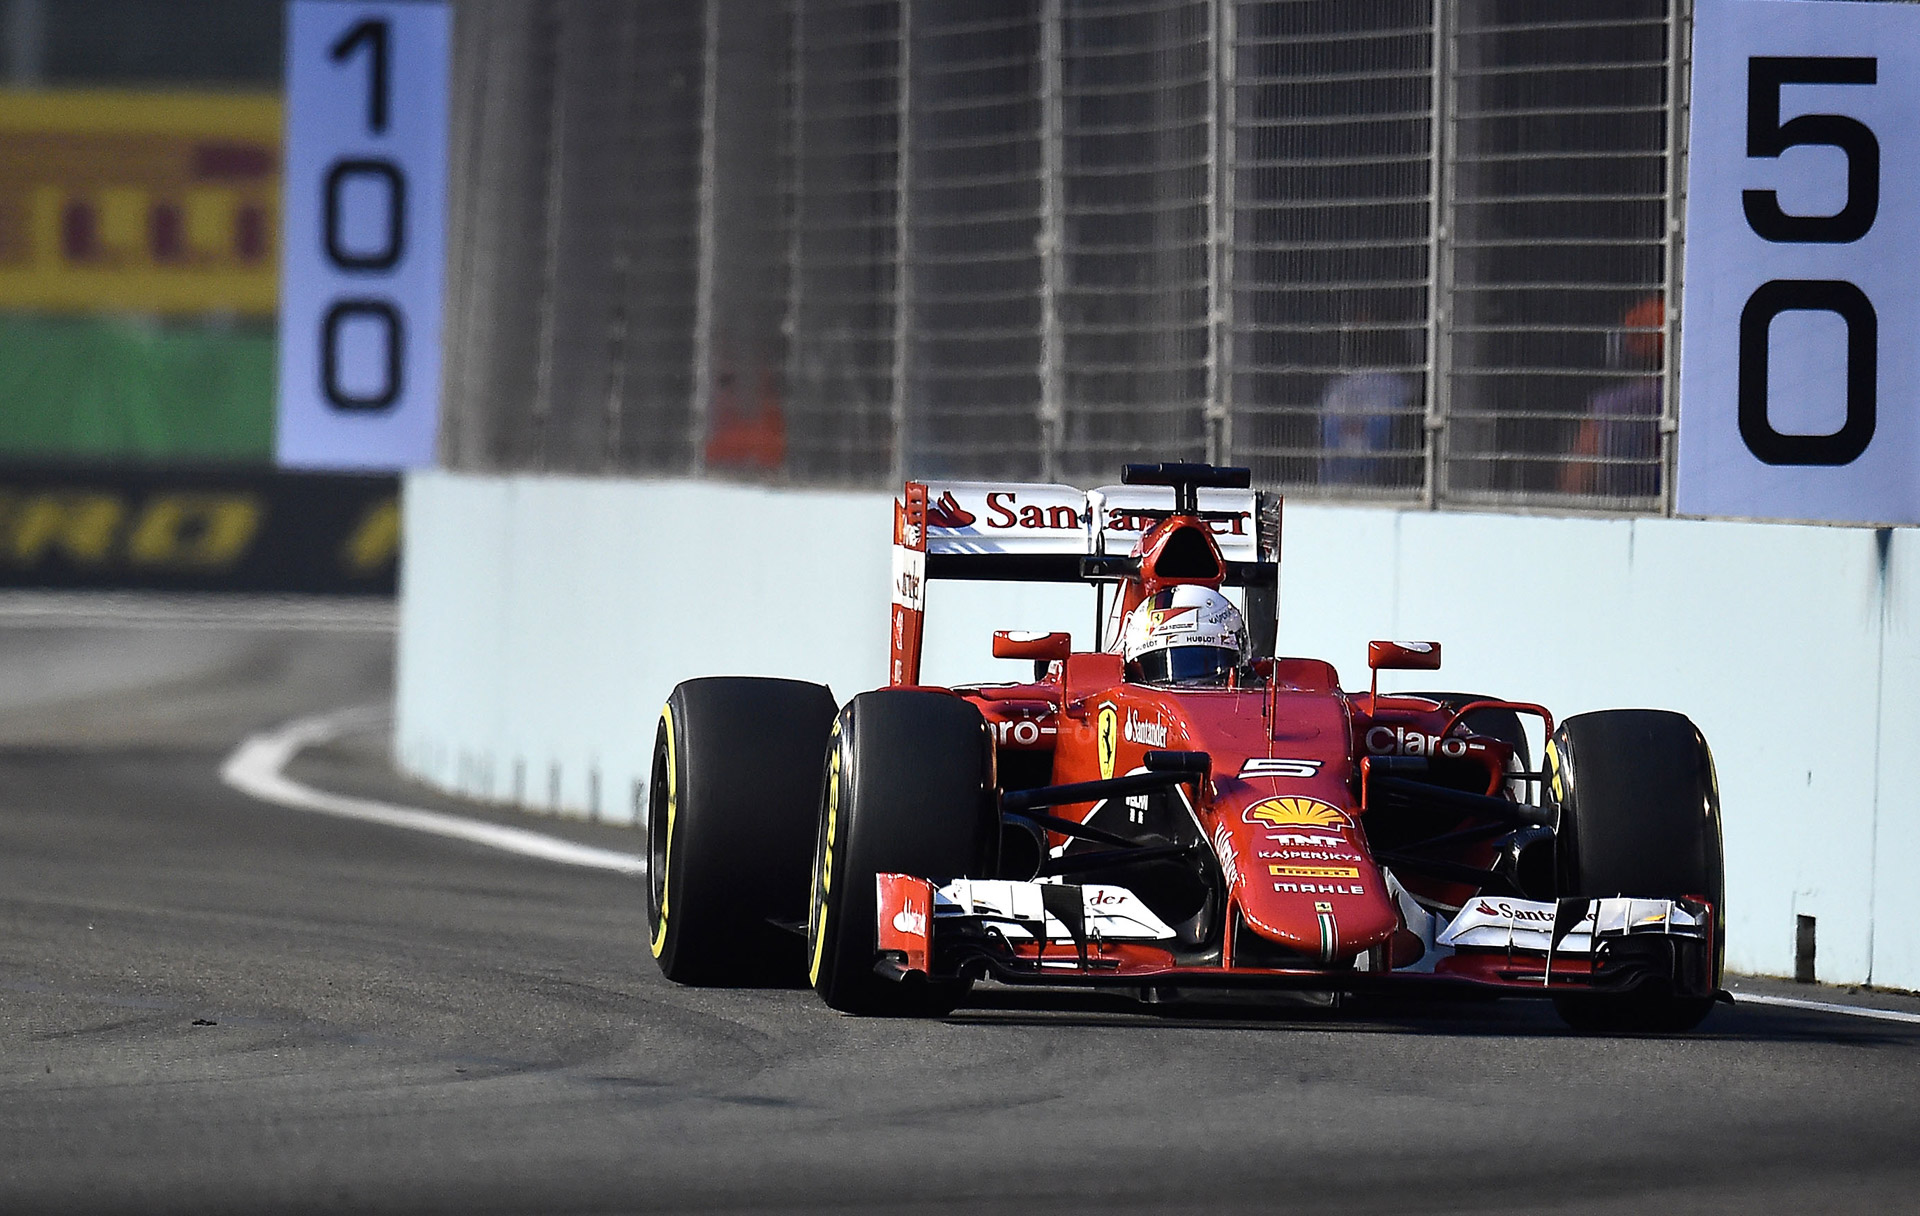 ferrari s sebastian vettel storms to singapore grand prix pole. Black Bedroom Furniture Sets. Home Design Ideas